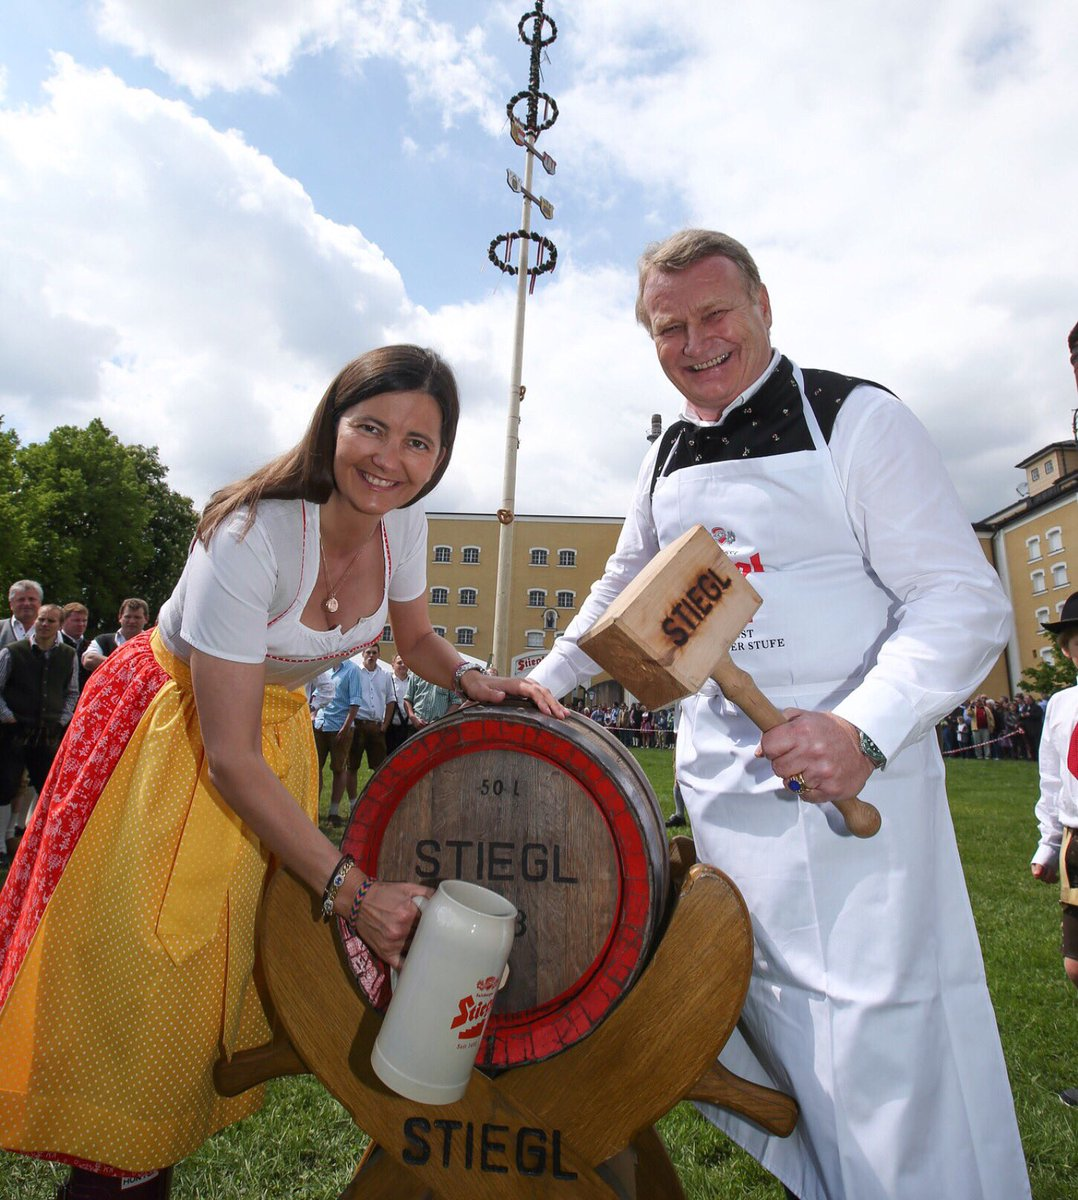 Happy May Day from Uncle Fritz in Bavaria! @Stieglbrauerei #prost #MayDay2019